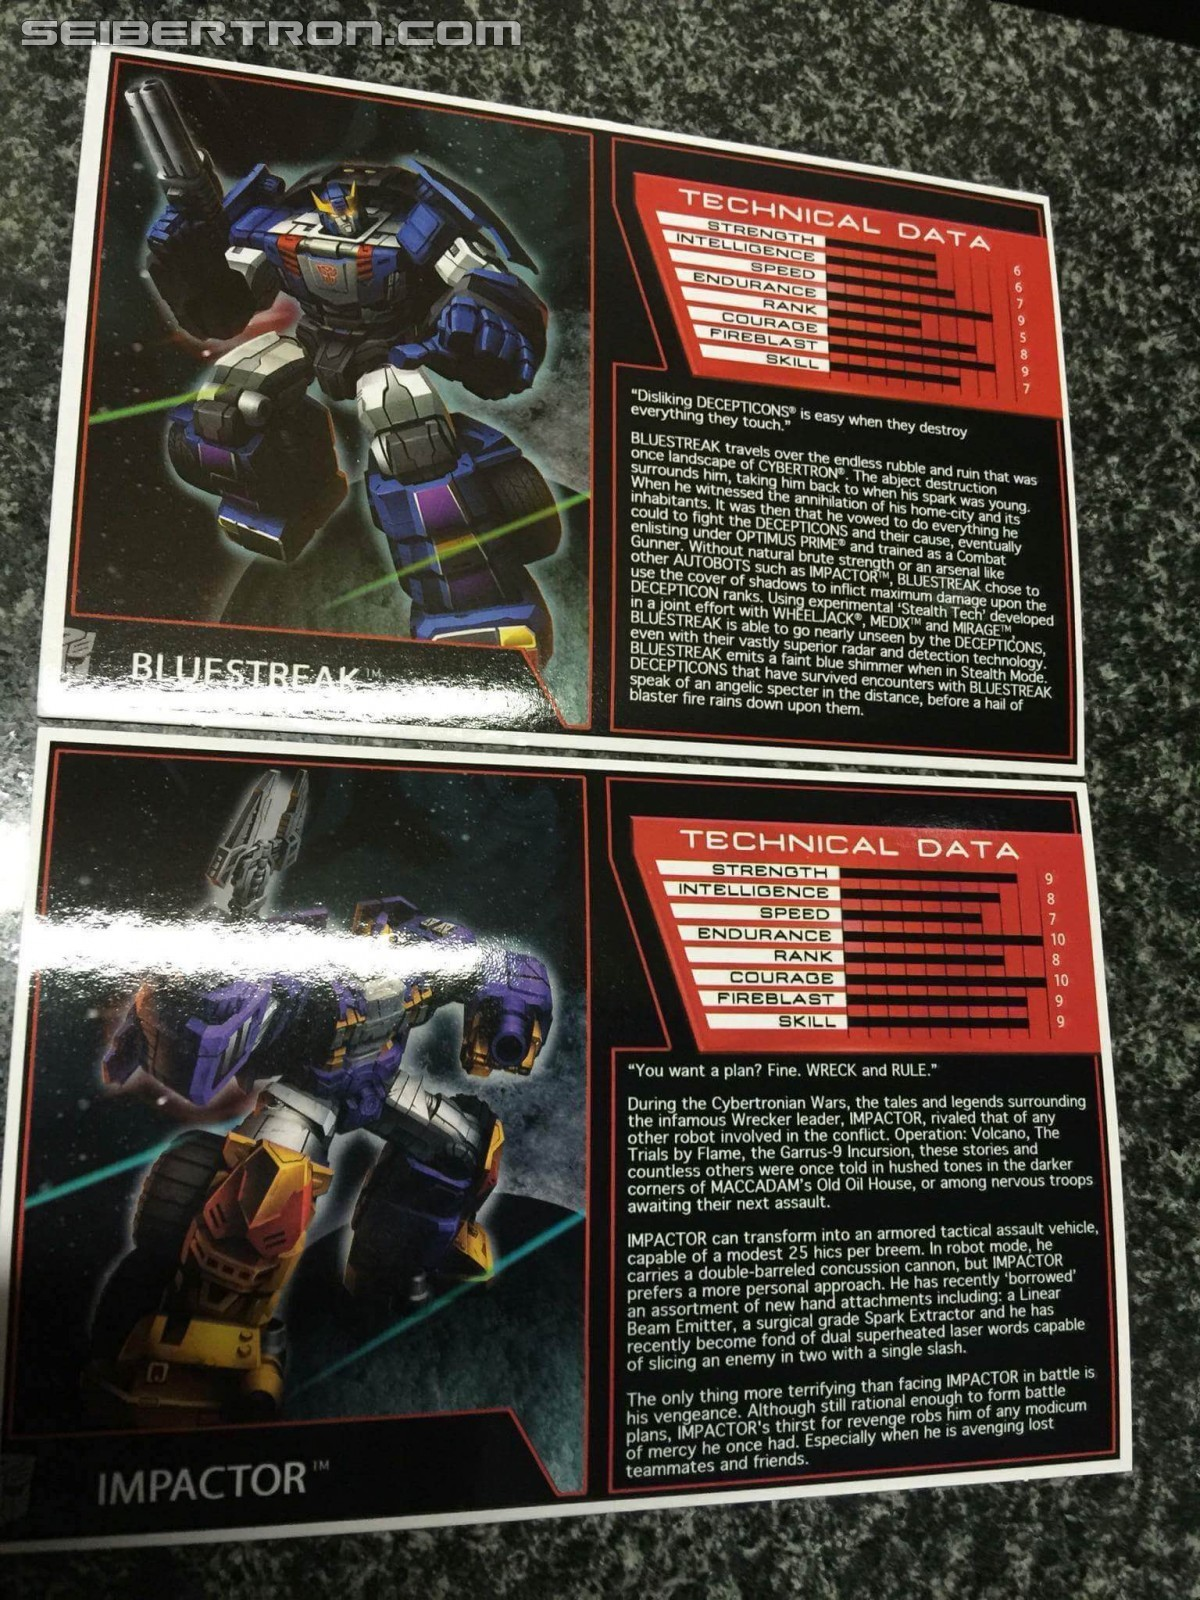 Transformers News: Transformers Subscription Service 4.0 Impactor and Bluestreak Arriving and In Hand Images